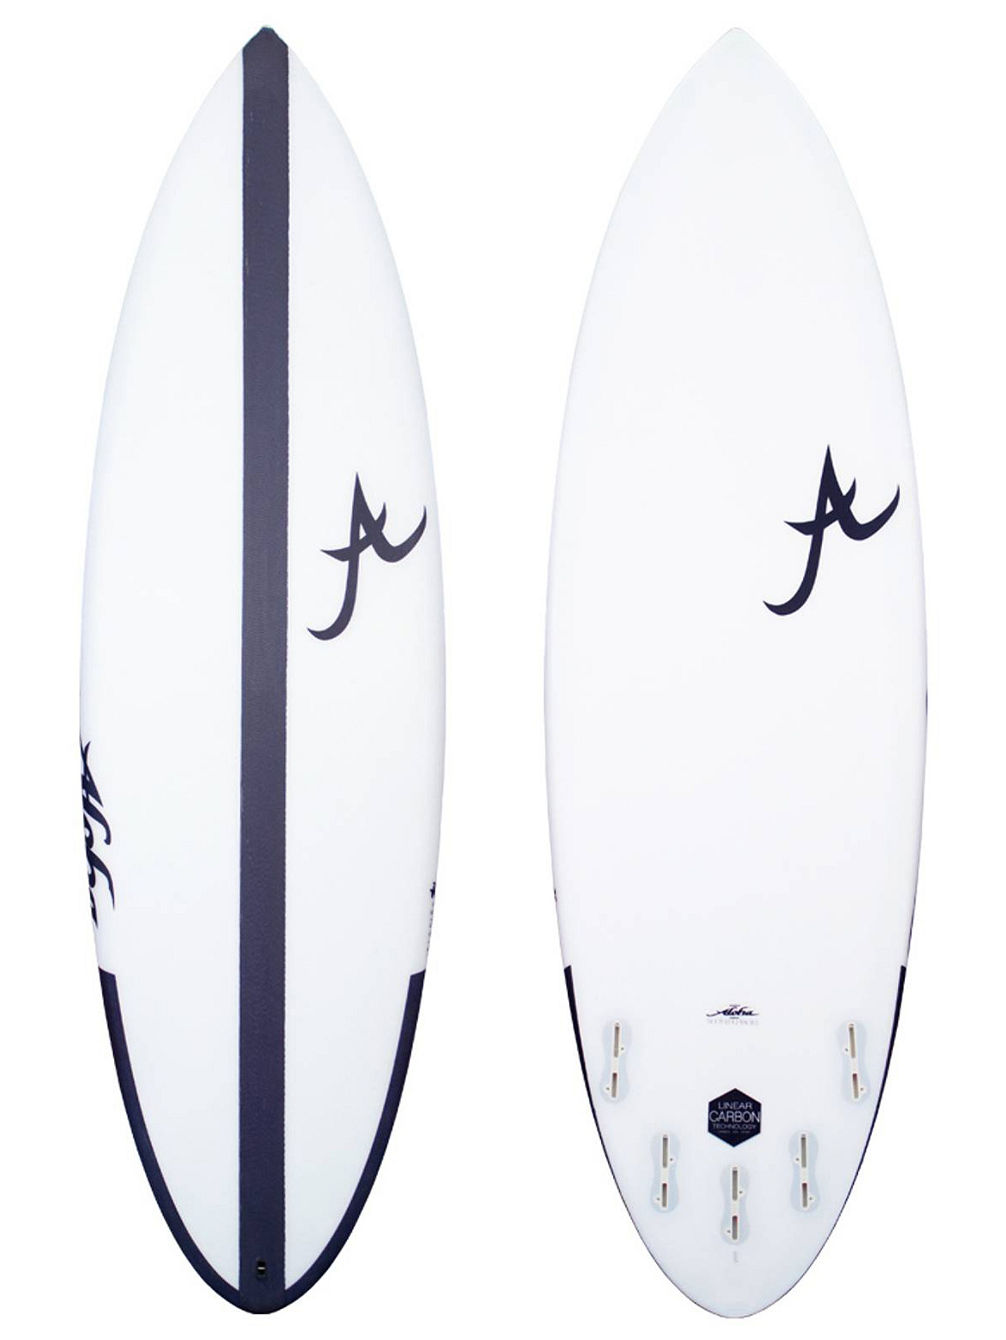 Jalapeno 5.10 Lct FCSII Surfboard